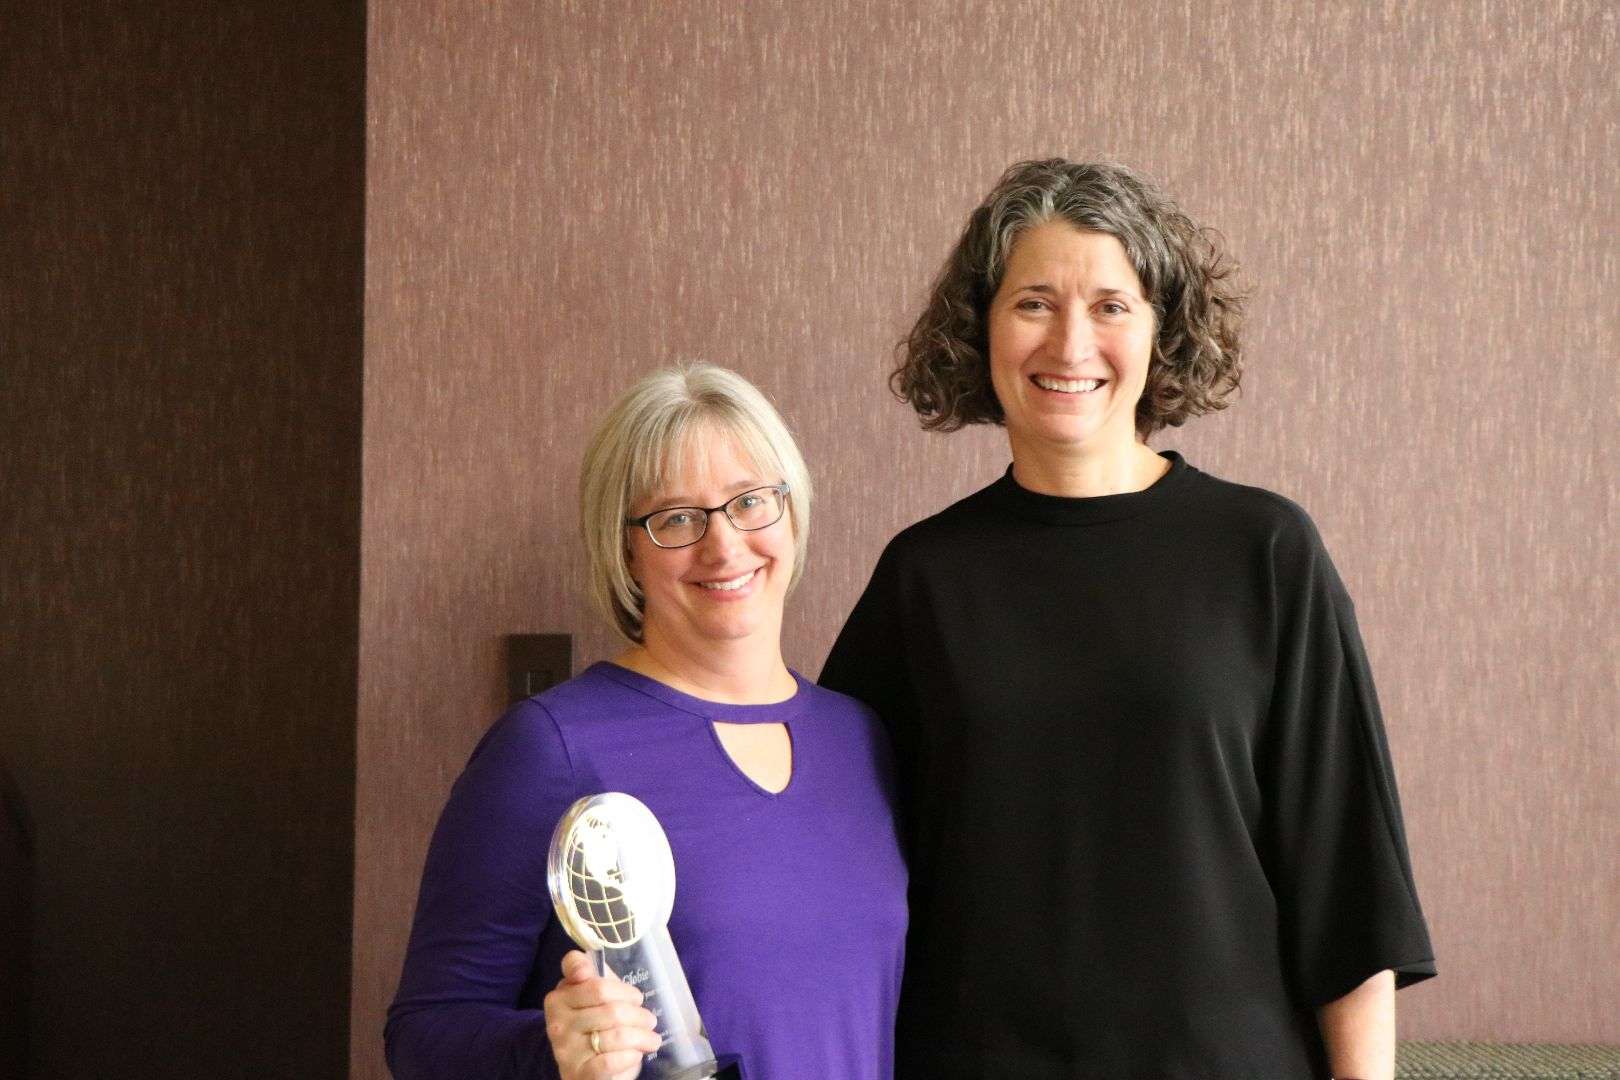 Two women standing together, one holding her Globie Award trophy.